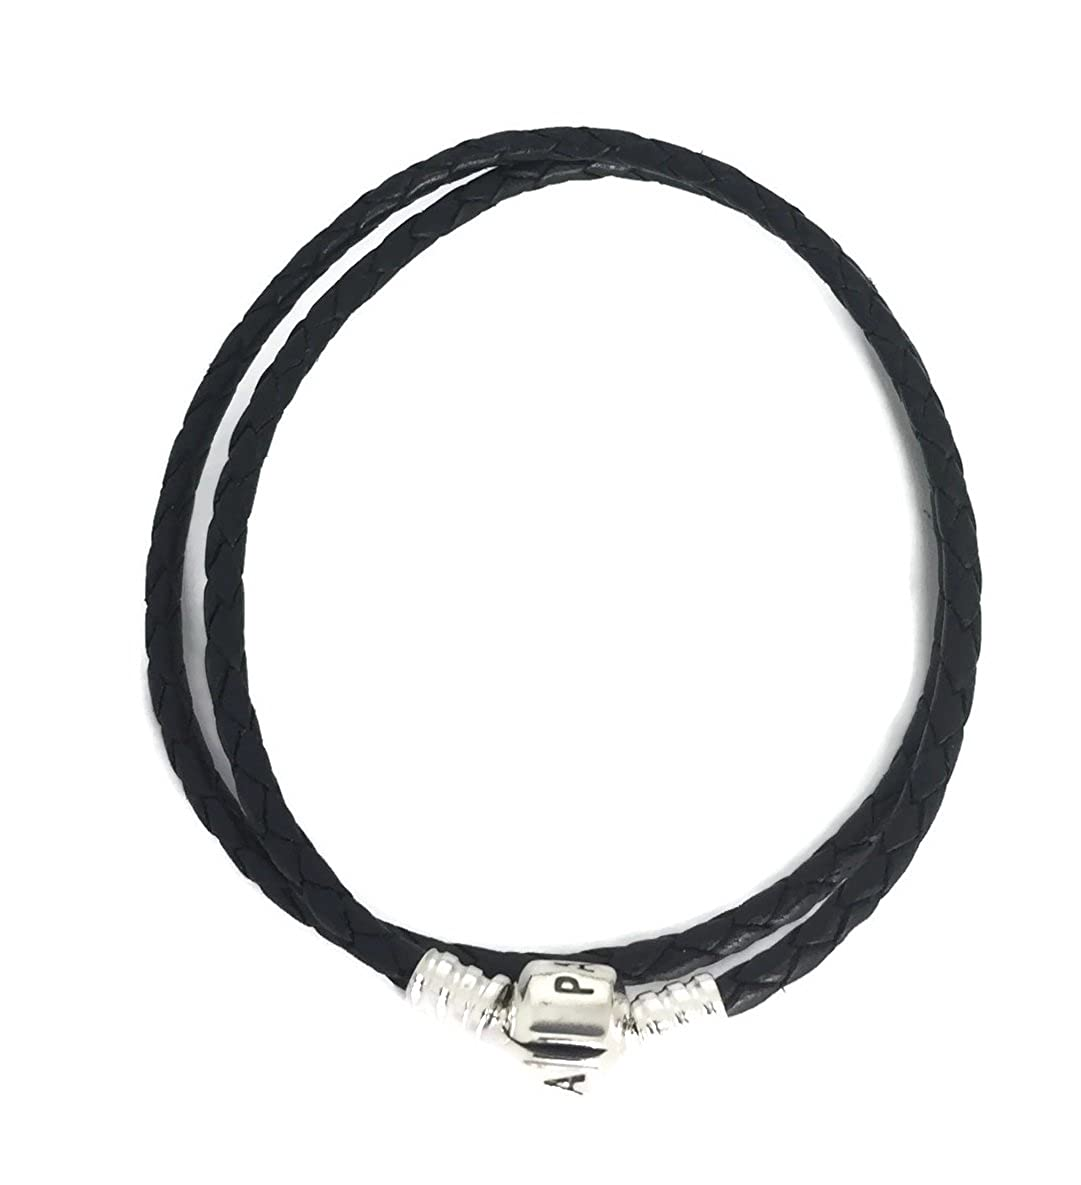 d1a055a75 Pandora Medium Double Black Leather Bracelet (15inch/38cm), 590705cbk-d2:  PANDORA: Amazon.co.uk: Jewellery